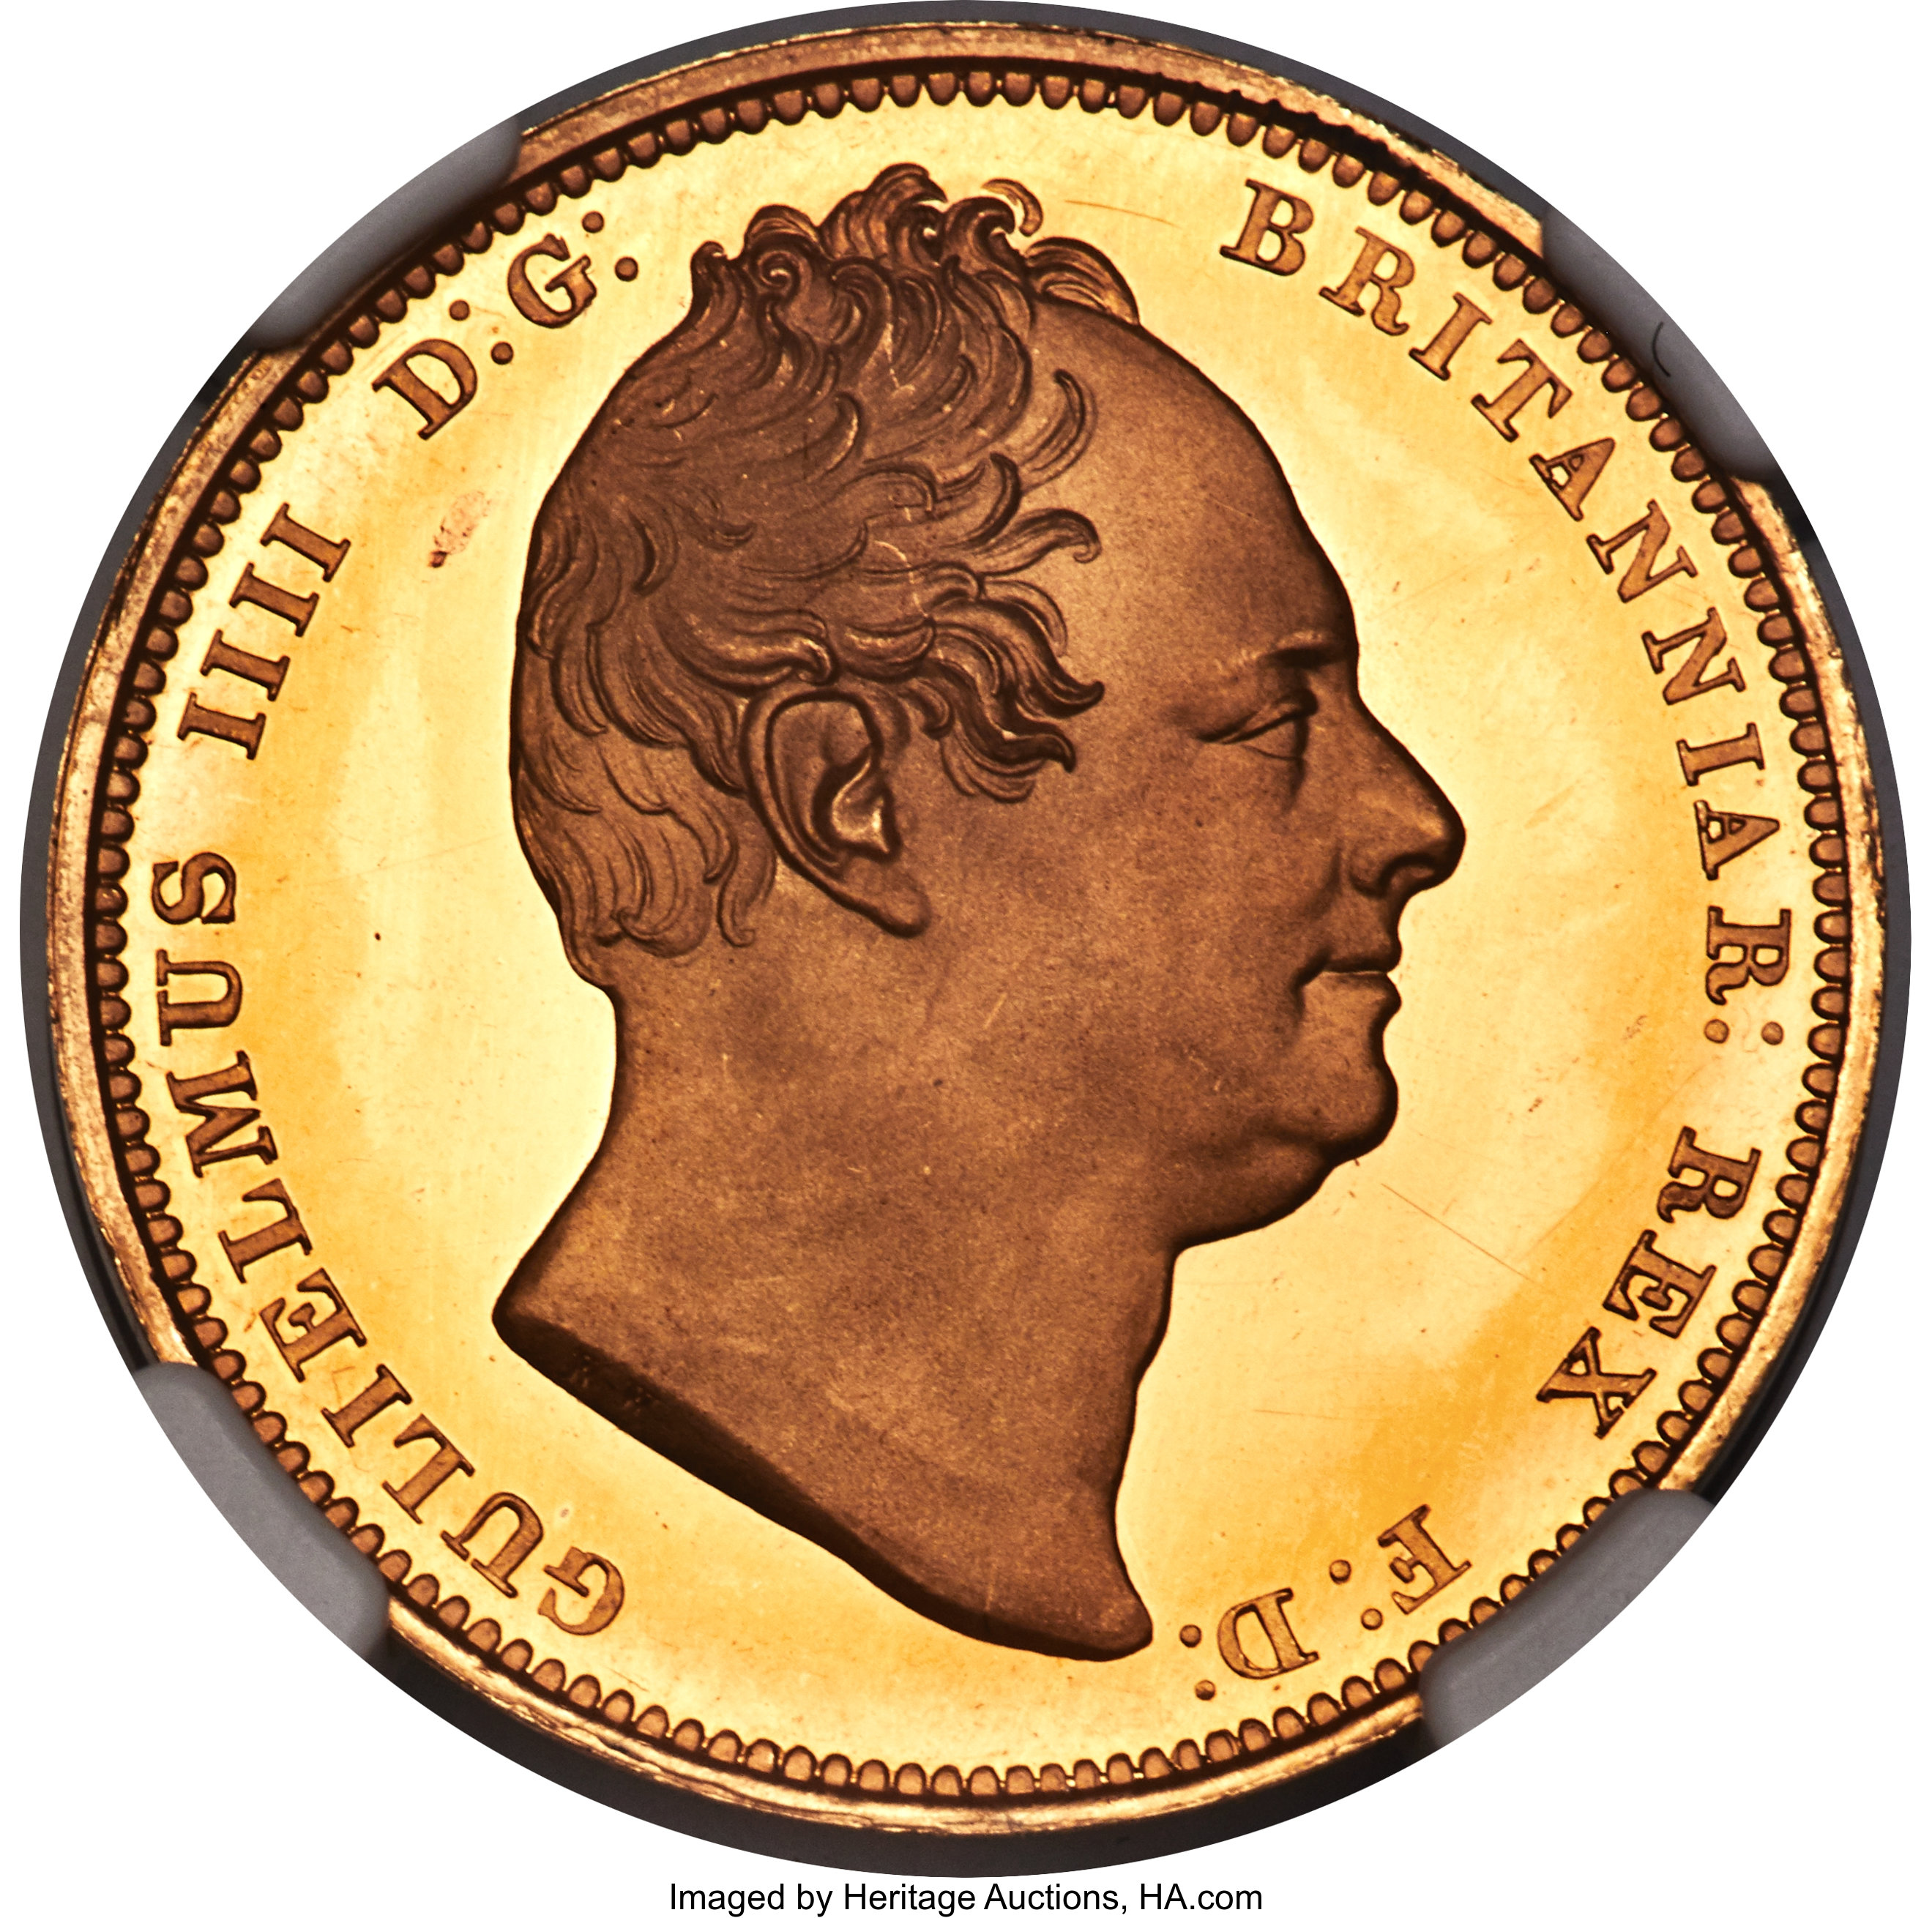 Great Britain William Iv Gold Proof 2 Pounds 1831 Pr65 Ultra Lot 31089 Heritage Auctions